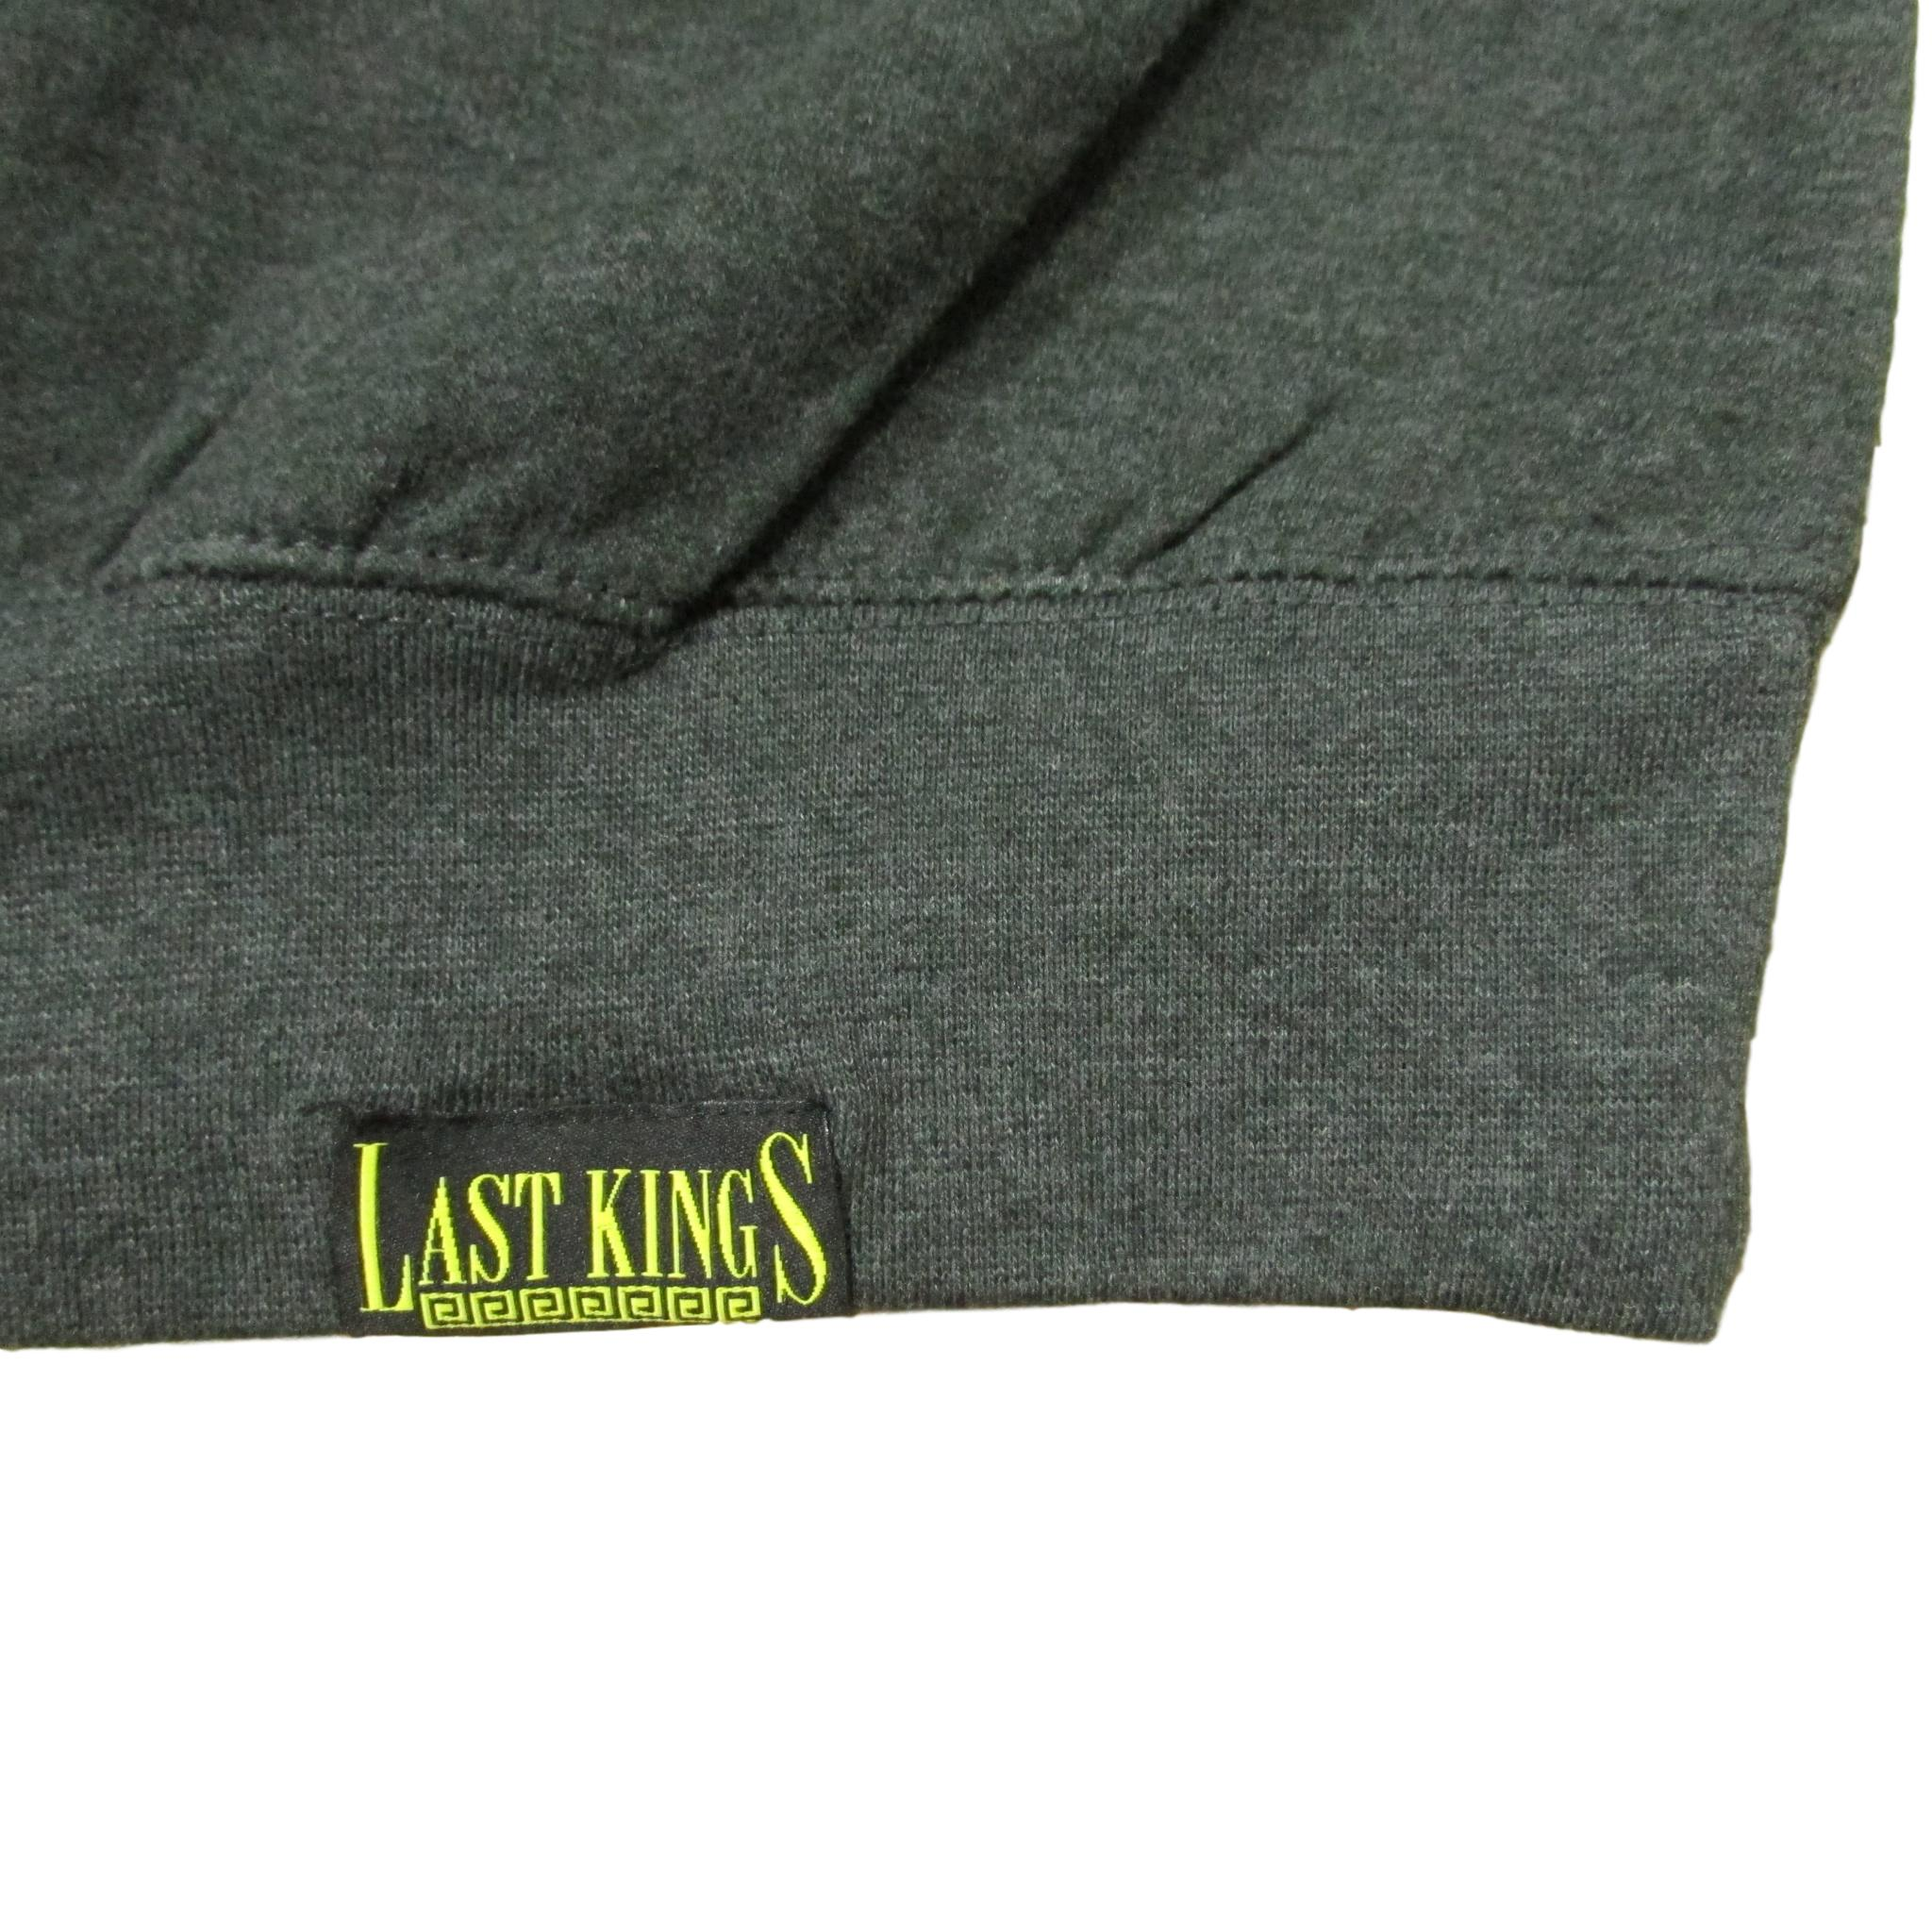 Last Kings Pharaoh Red Tape Crewneck Sweater Gray